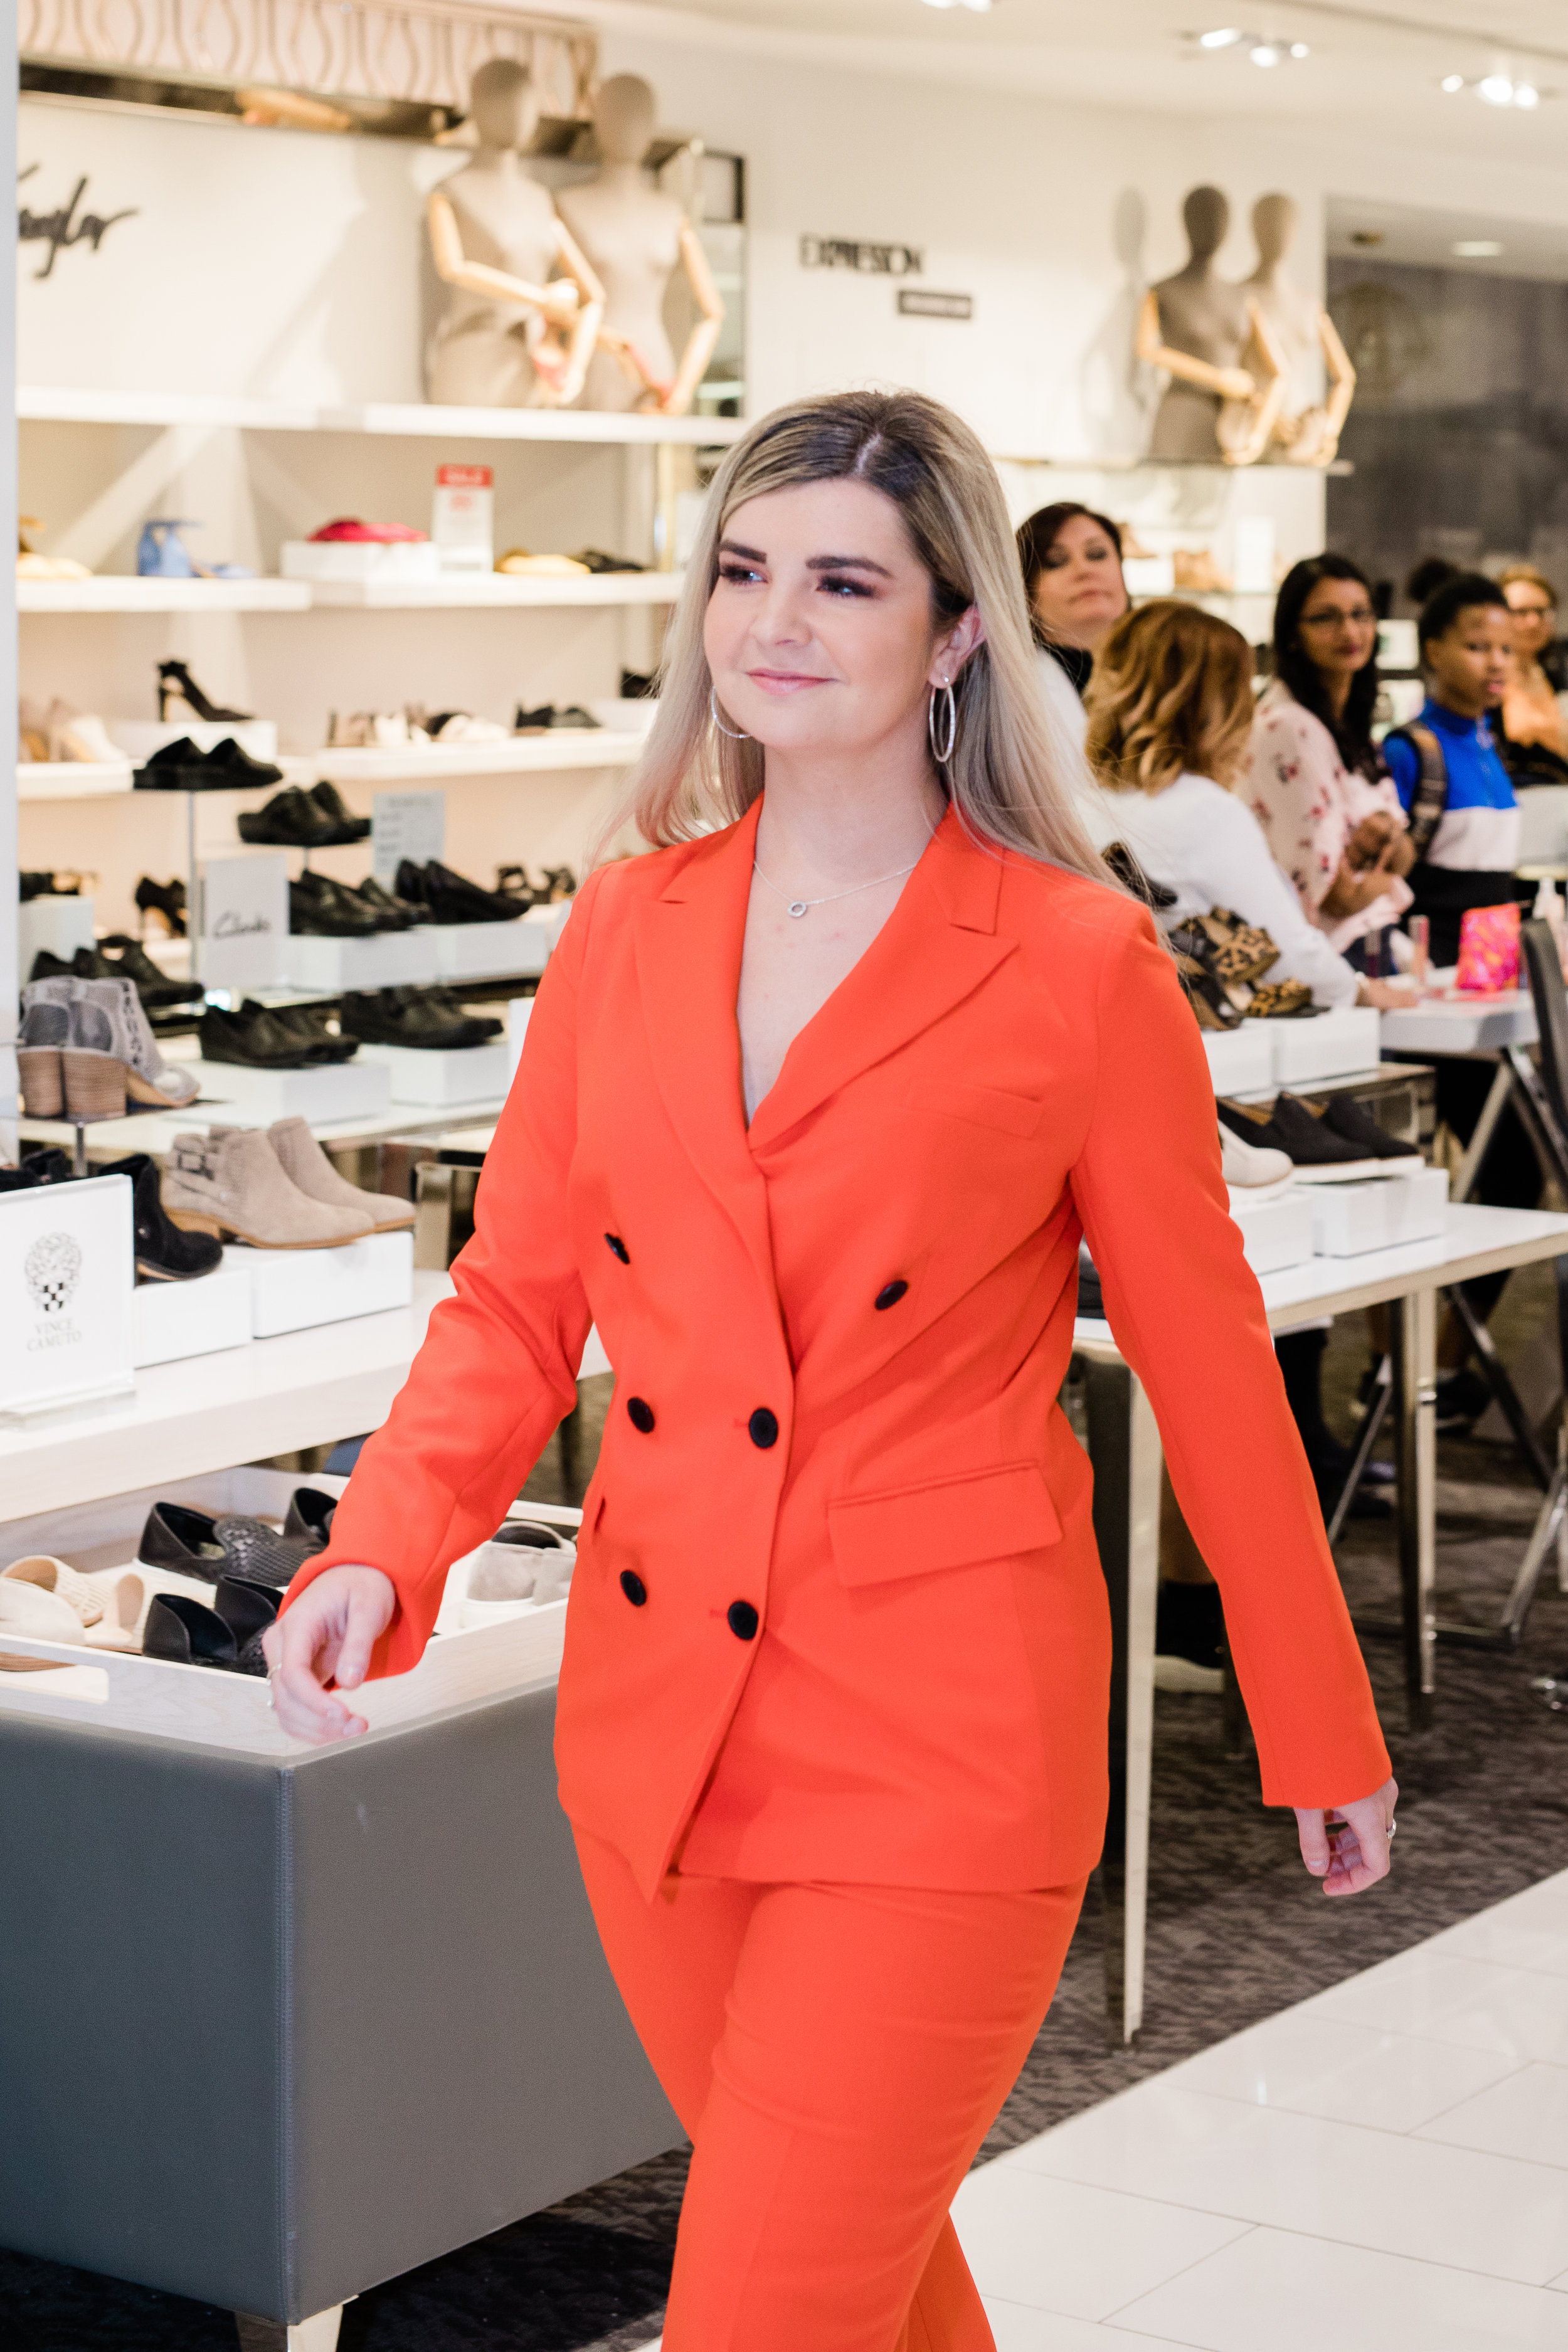 No.35 Tailoring - Tailored Suits make a statement, in any colour! The bright orange really pops and updates any wardrobe by Suitable for Work. Paired with black python print heels to elevate the style, this look is ready to take on the working-world with a pop of brightness!